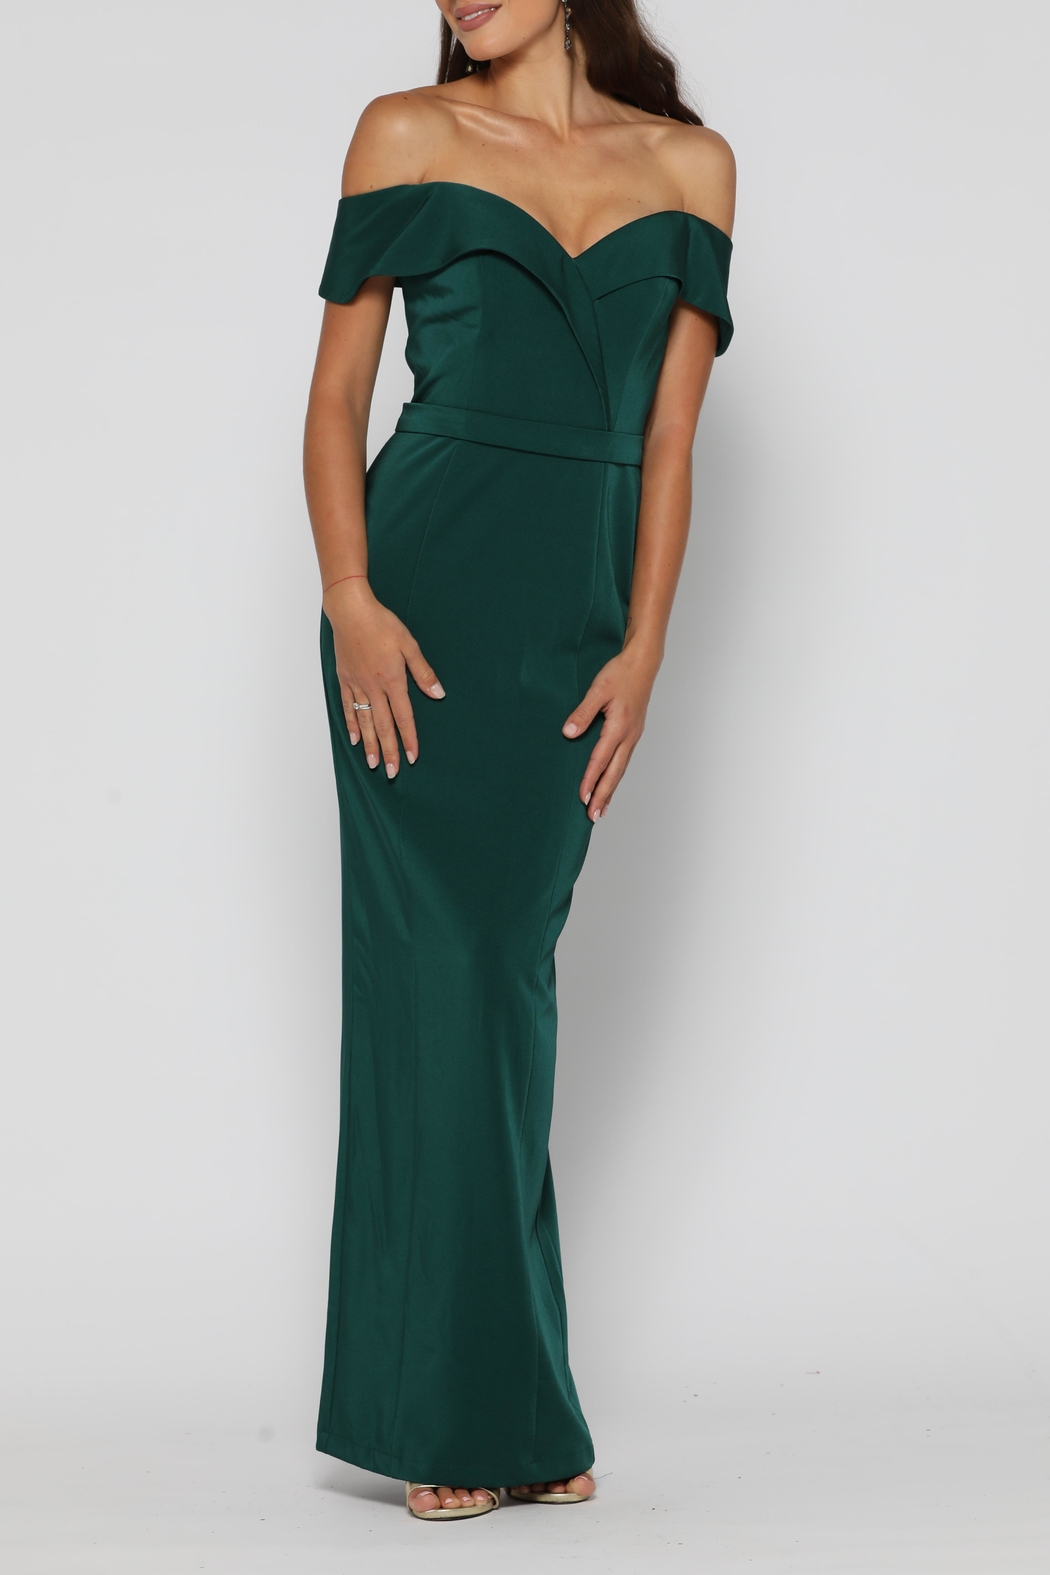 YSS the Label Paris Dress Emerald - Front Full Image